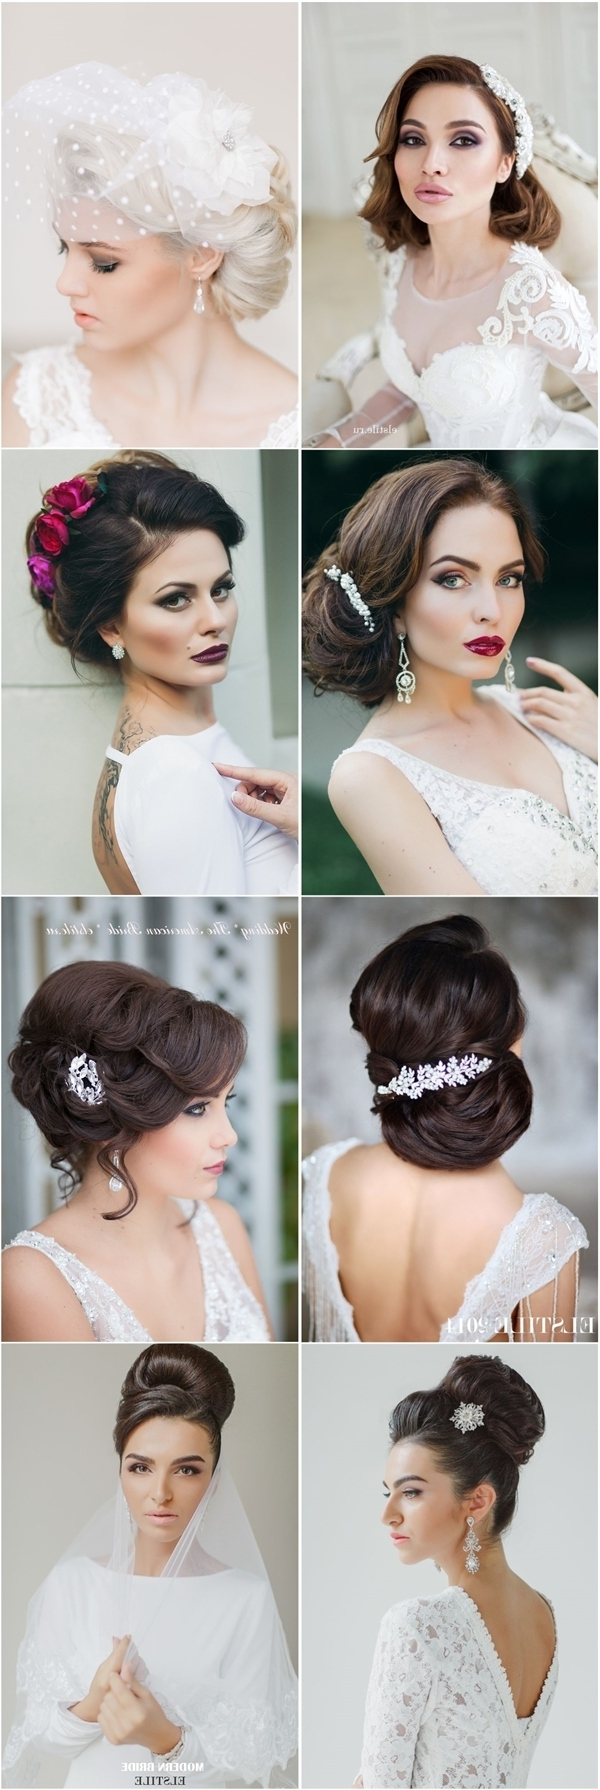 21 Inspirational Vintage Retro Wedding Hairstyles (View 13 of 15)